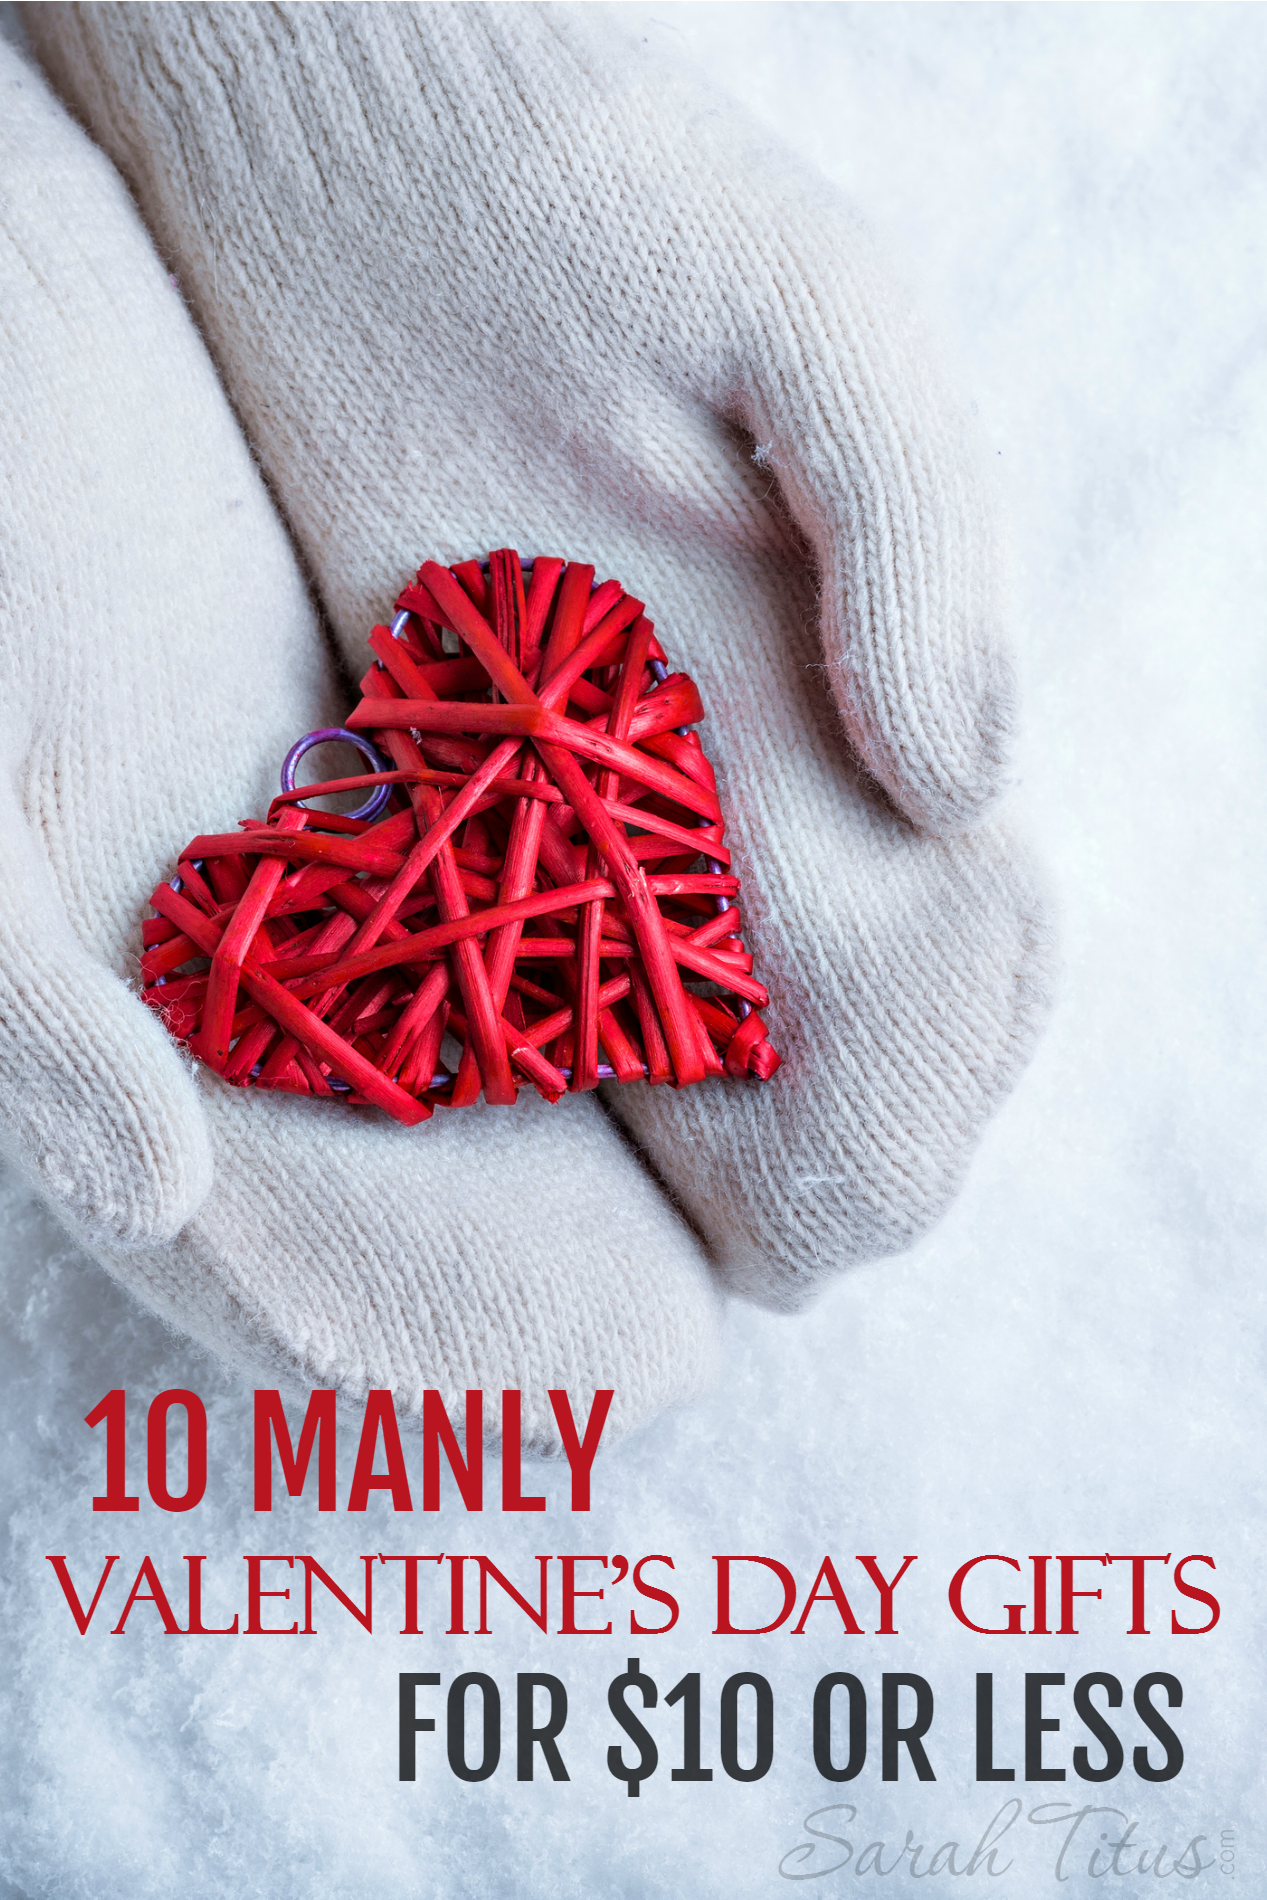 10 Manly Valentine's Day Gifts for $10 or Less - Sarah Titus